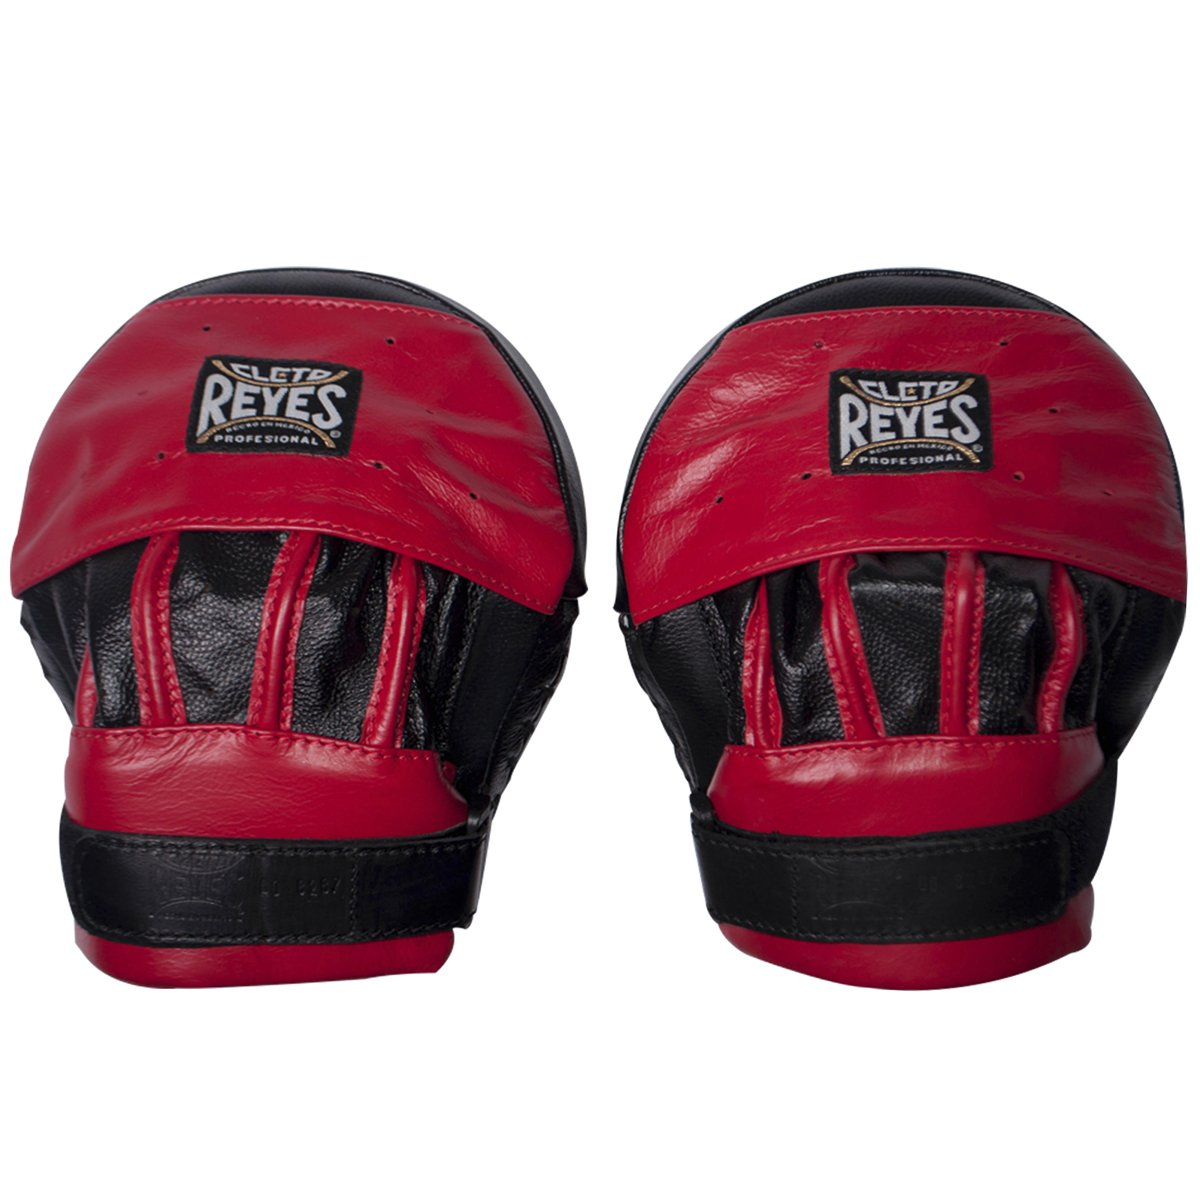 Mytra Fusion Curved Focus Pads Hook /& Jab Mitts Strike Pad Boxing Pads Muay Thai MMA Kickboxing Punching Training Pads Focus pad Dummy Pads Thai pad Kick pad Training Punching Sparring Pads